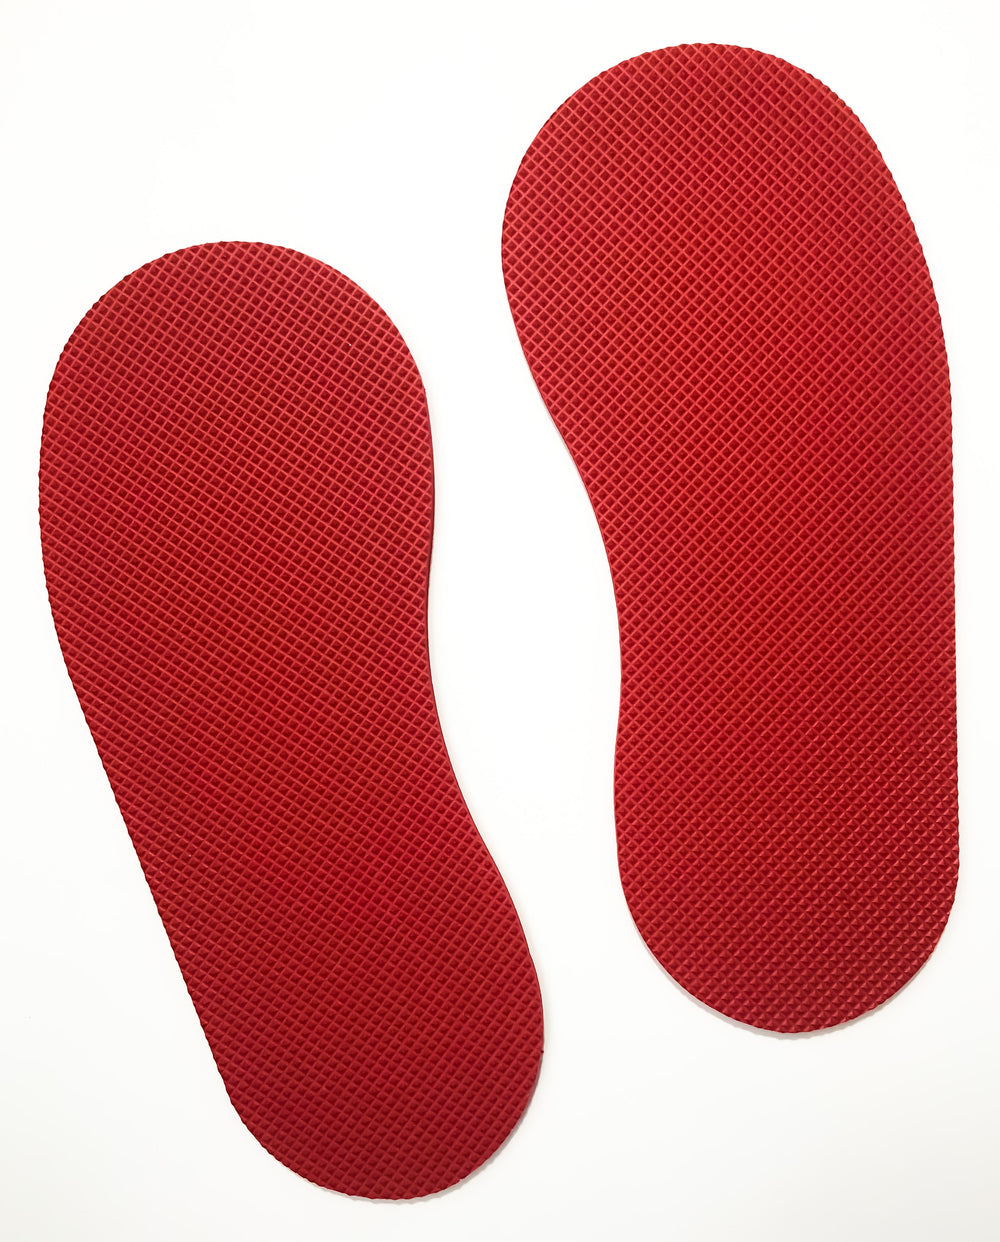 Colored 1/4 inch Diamond Textured Foot pads